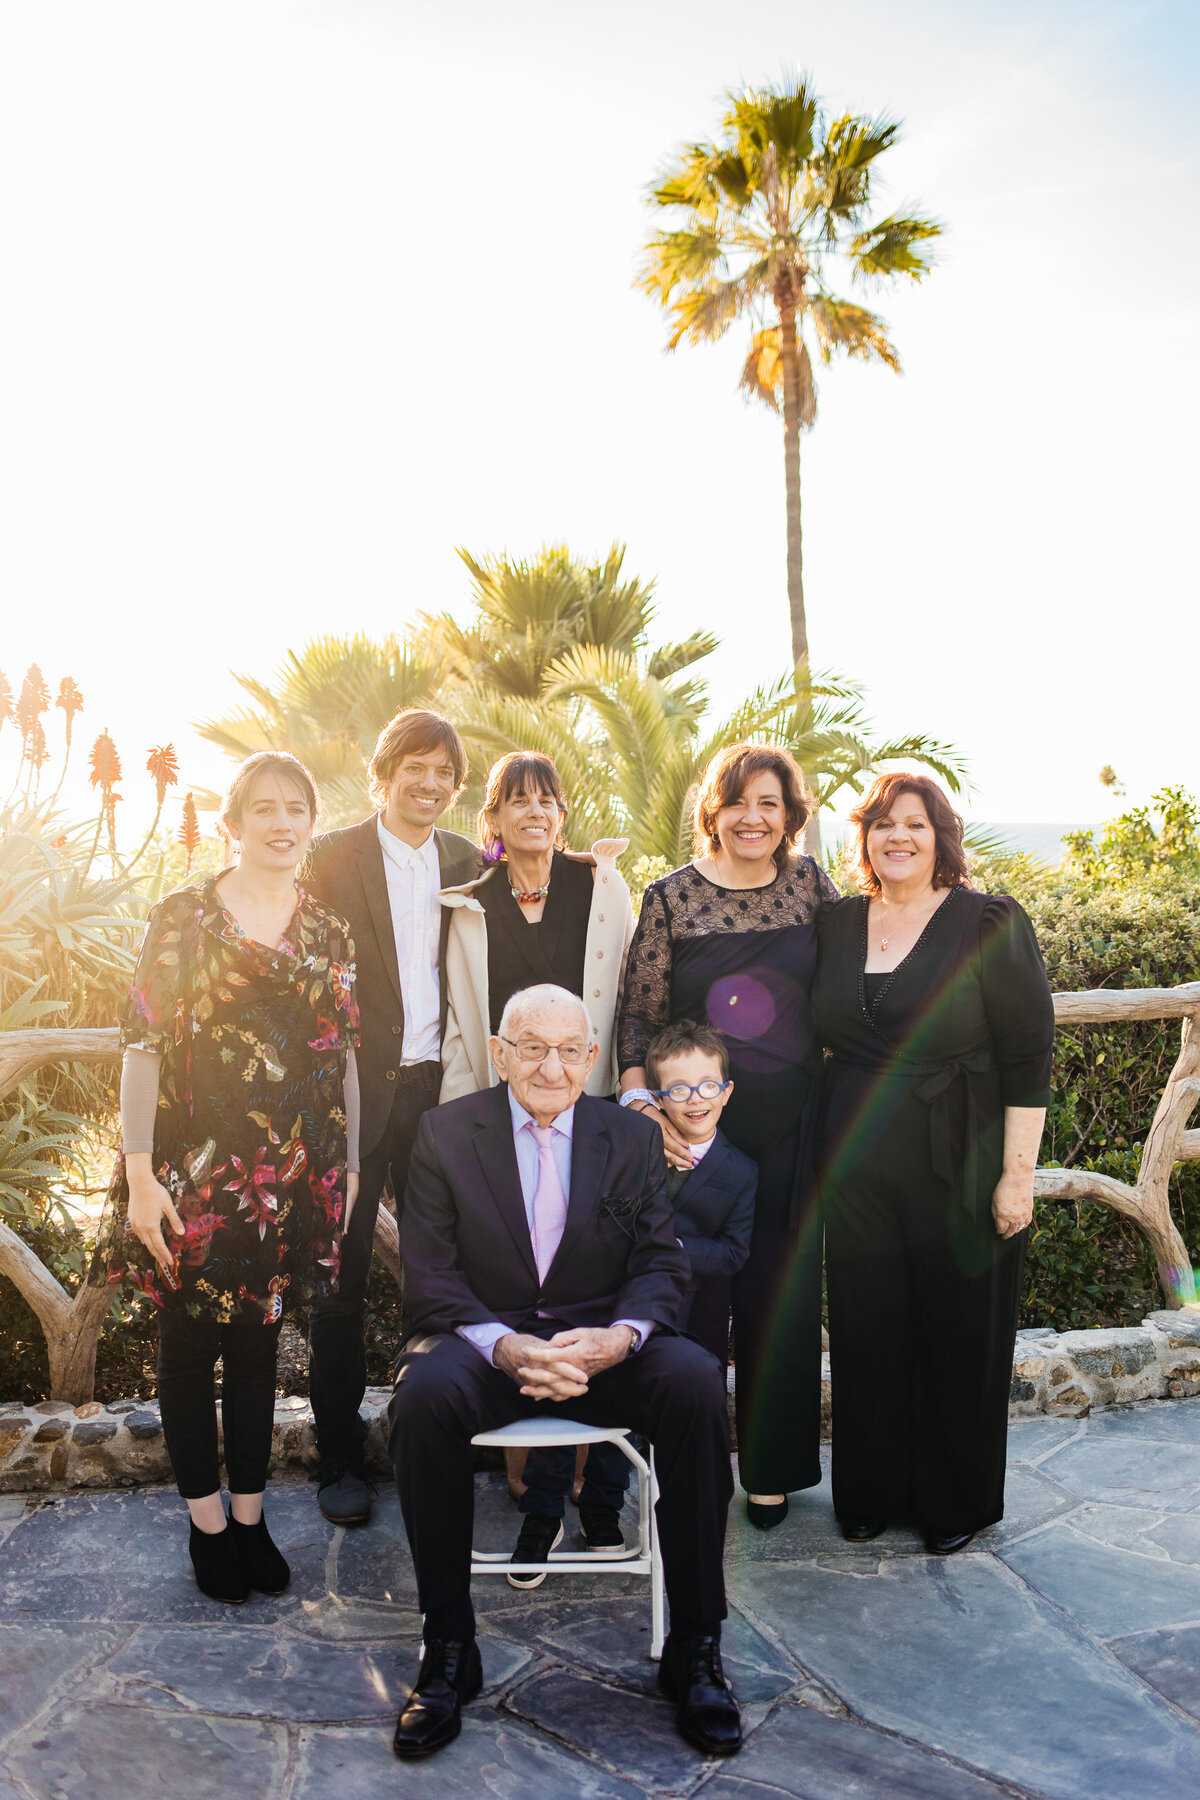 family-photos-socal-wedding-photographer-erin-marton-photography-17